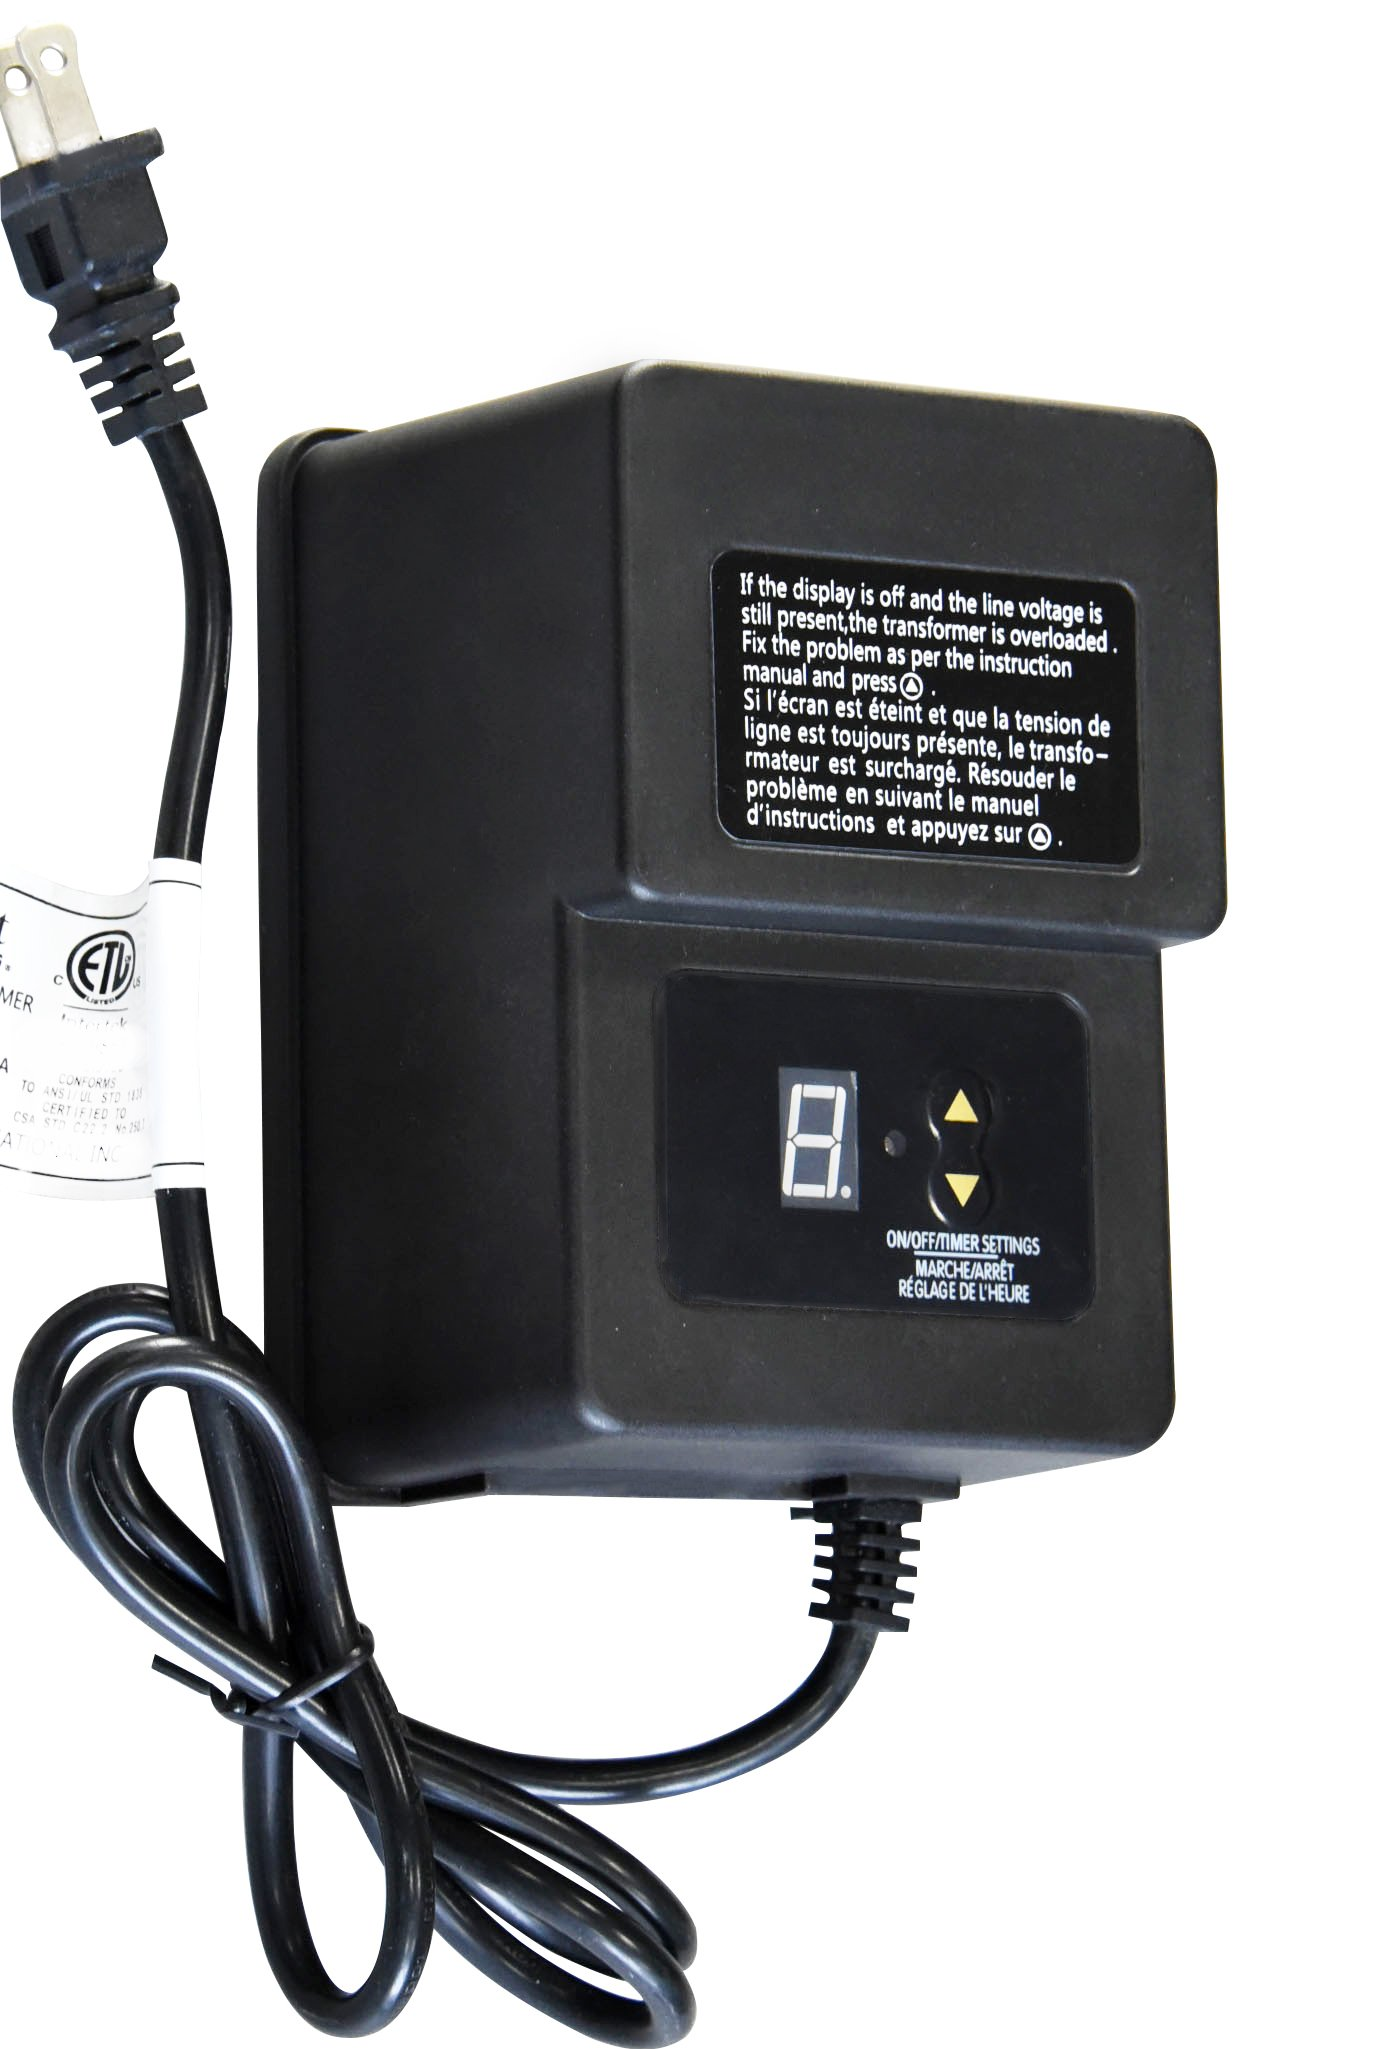 Khan 120w Landscape Lighting Transformer for Outdoor use with Sensor and Timer Program Low Voltage 12V Output Power Pack KH-120T by Khan Tech